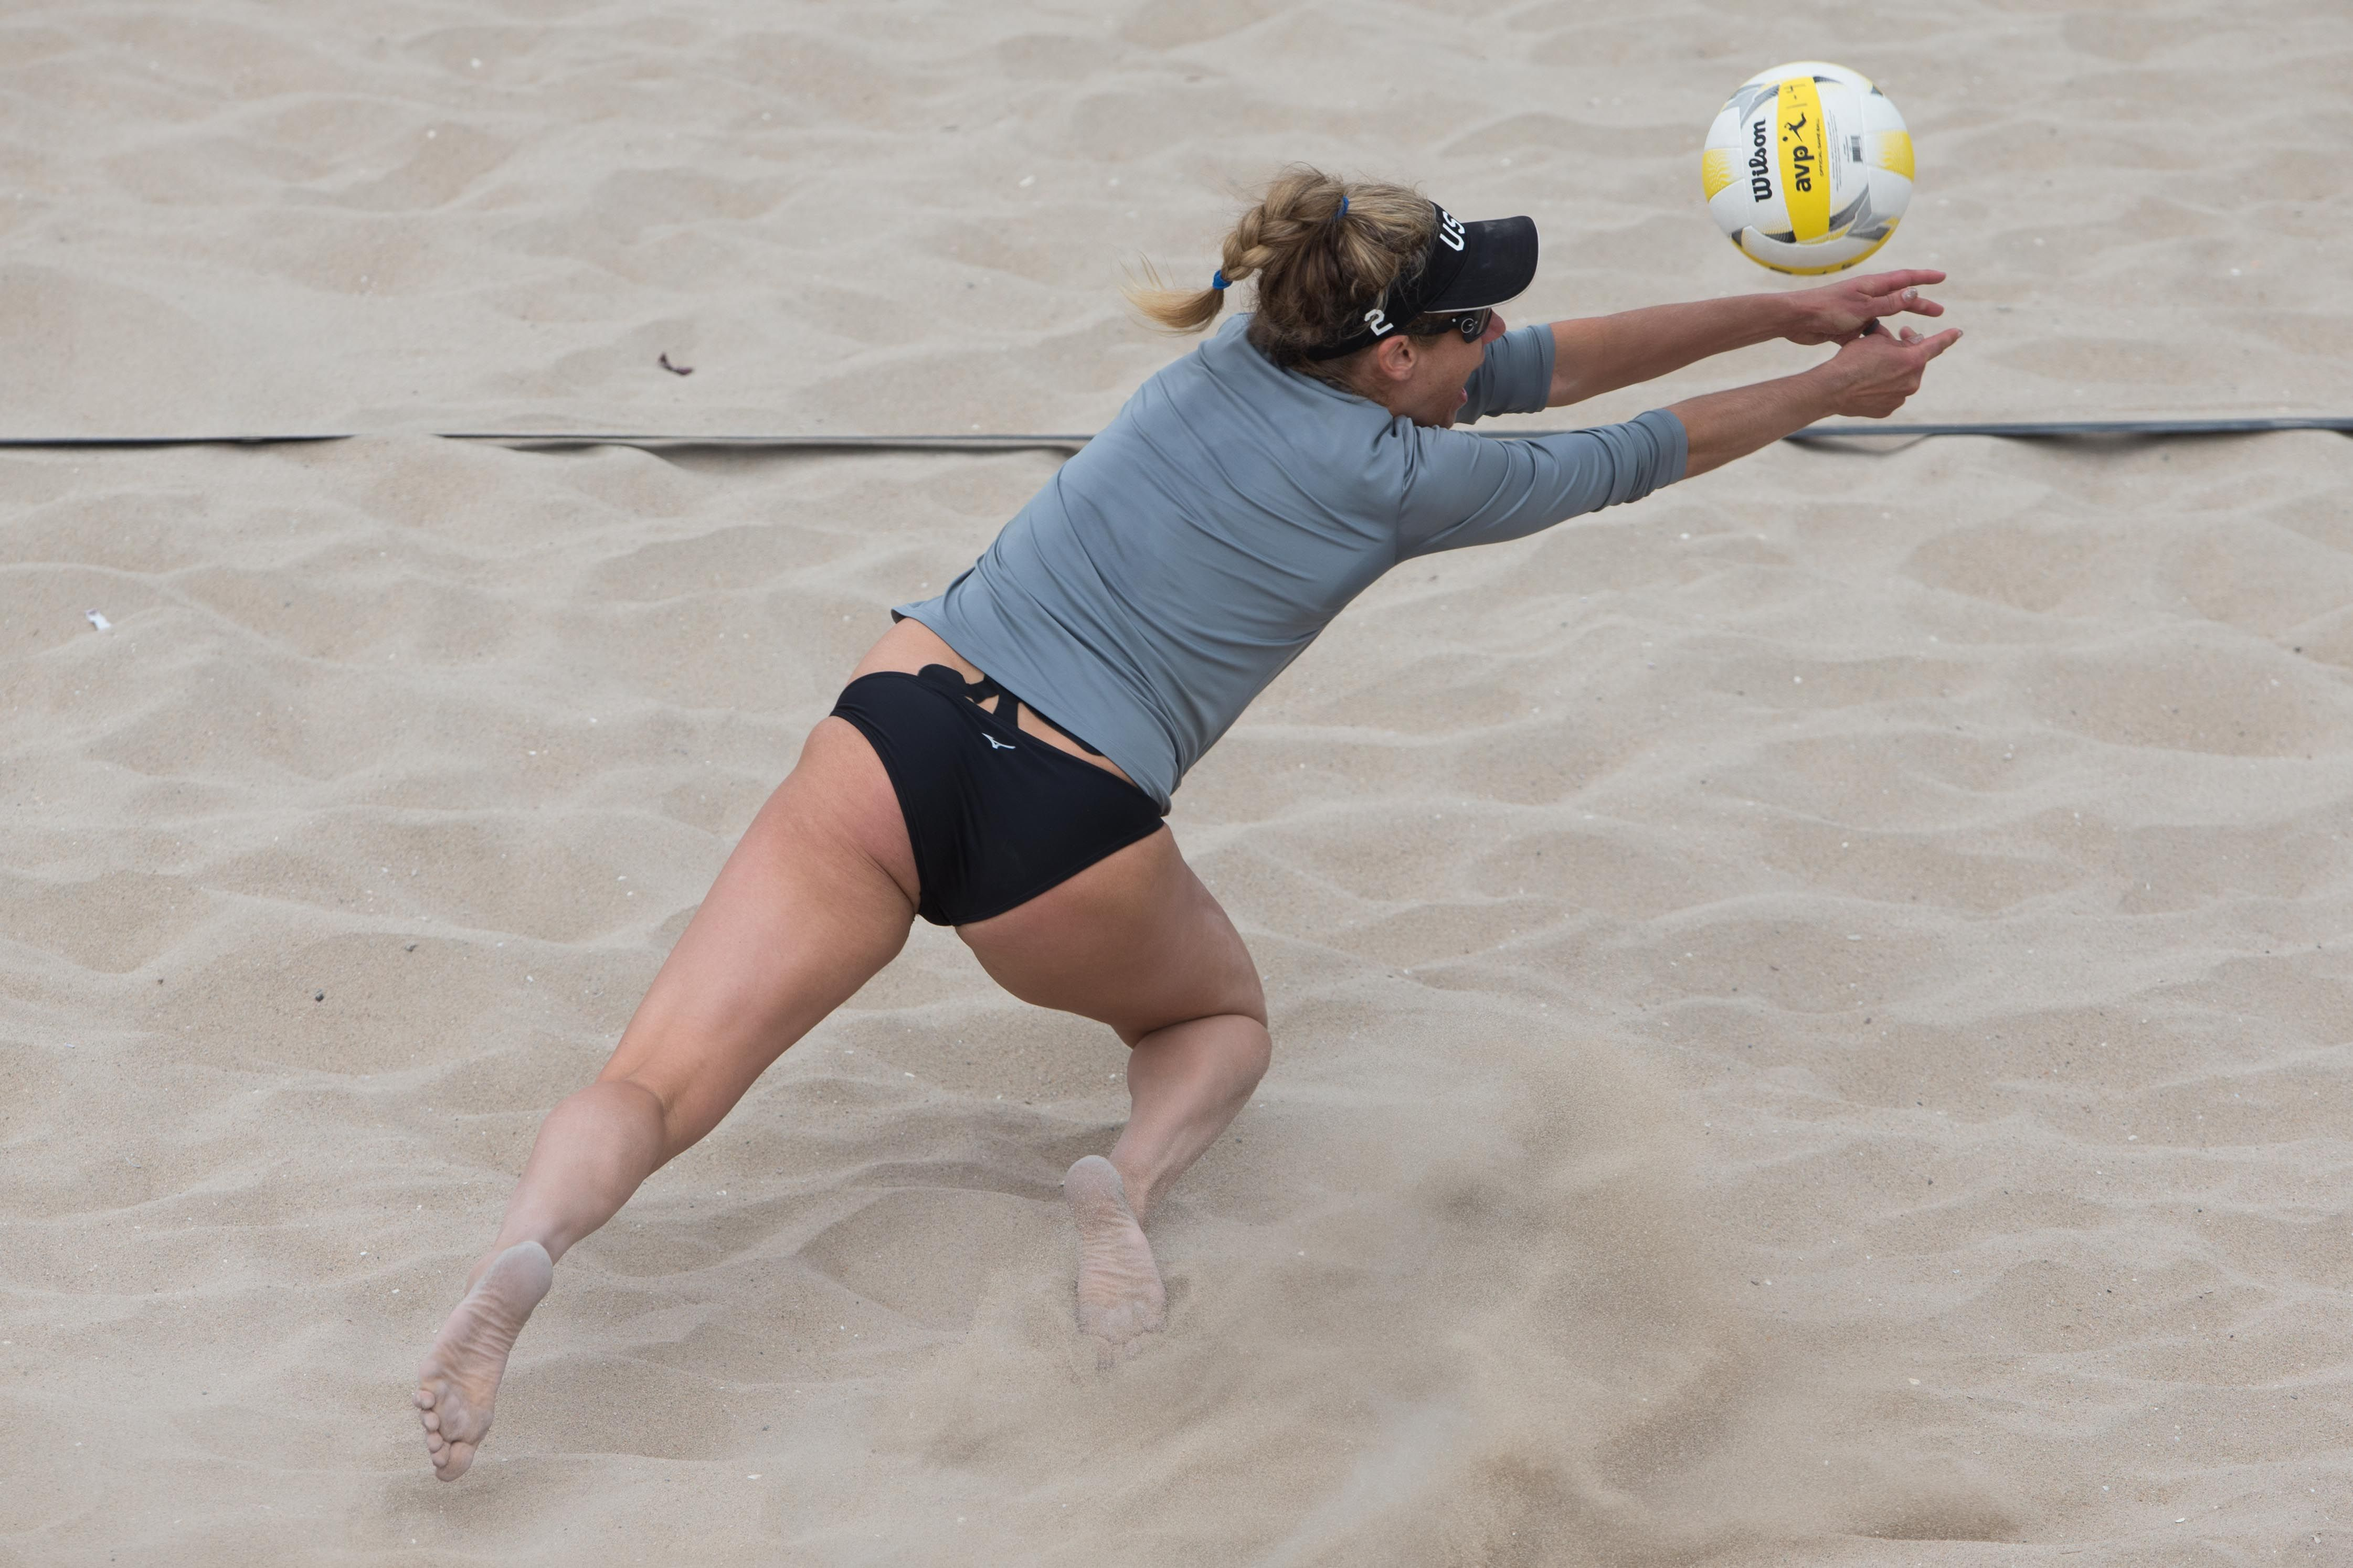 Avp Huntington Beach Open 2017 Photo Gallery Avp Beach Volleyball Beach Volleyball Women Volleyball Huntington Beach